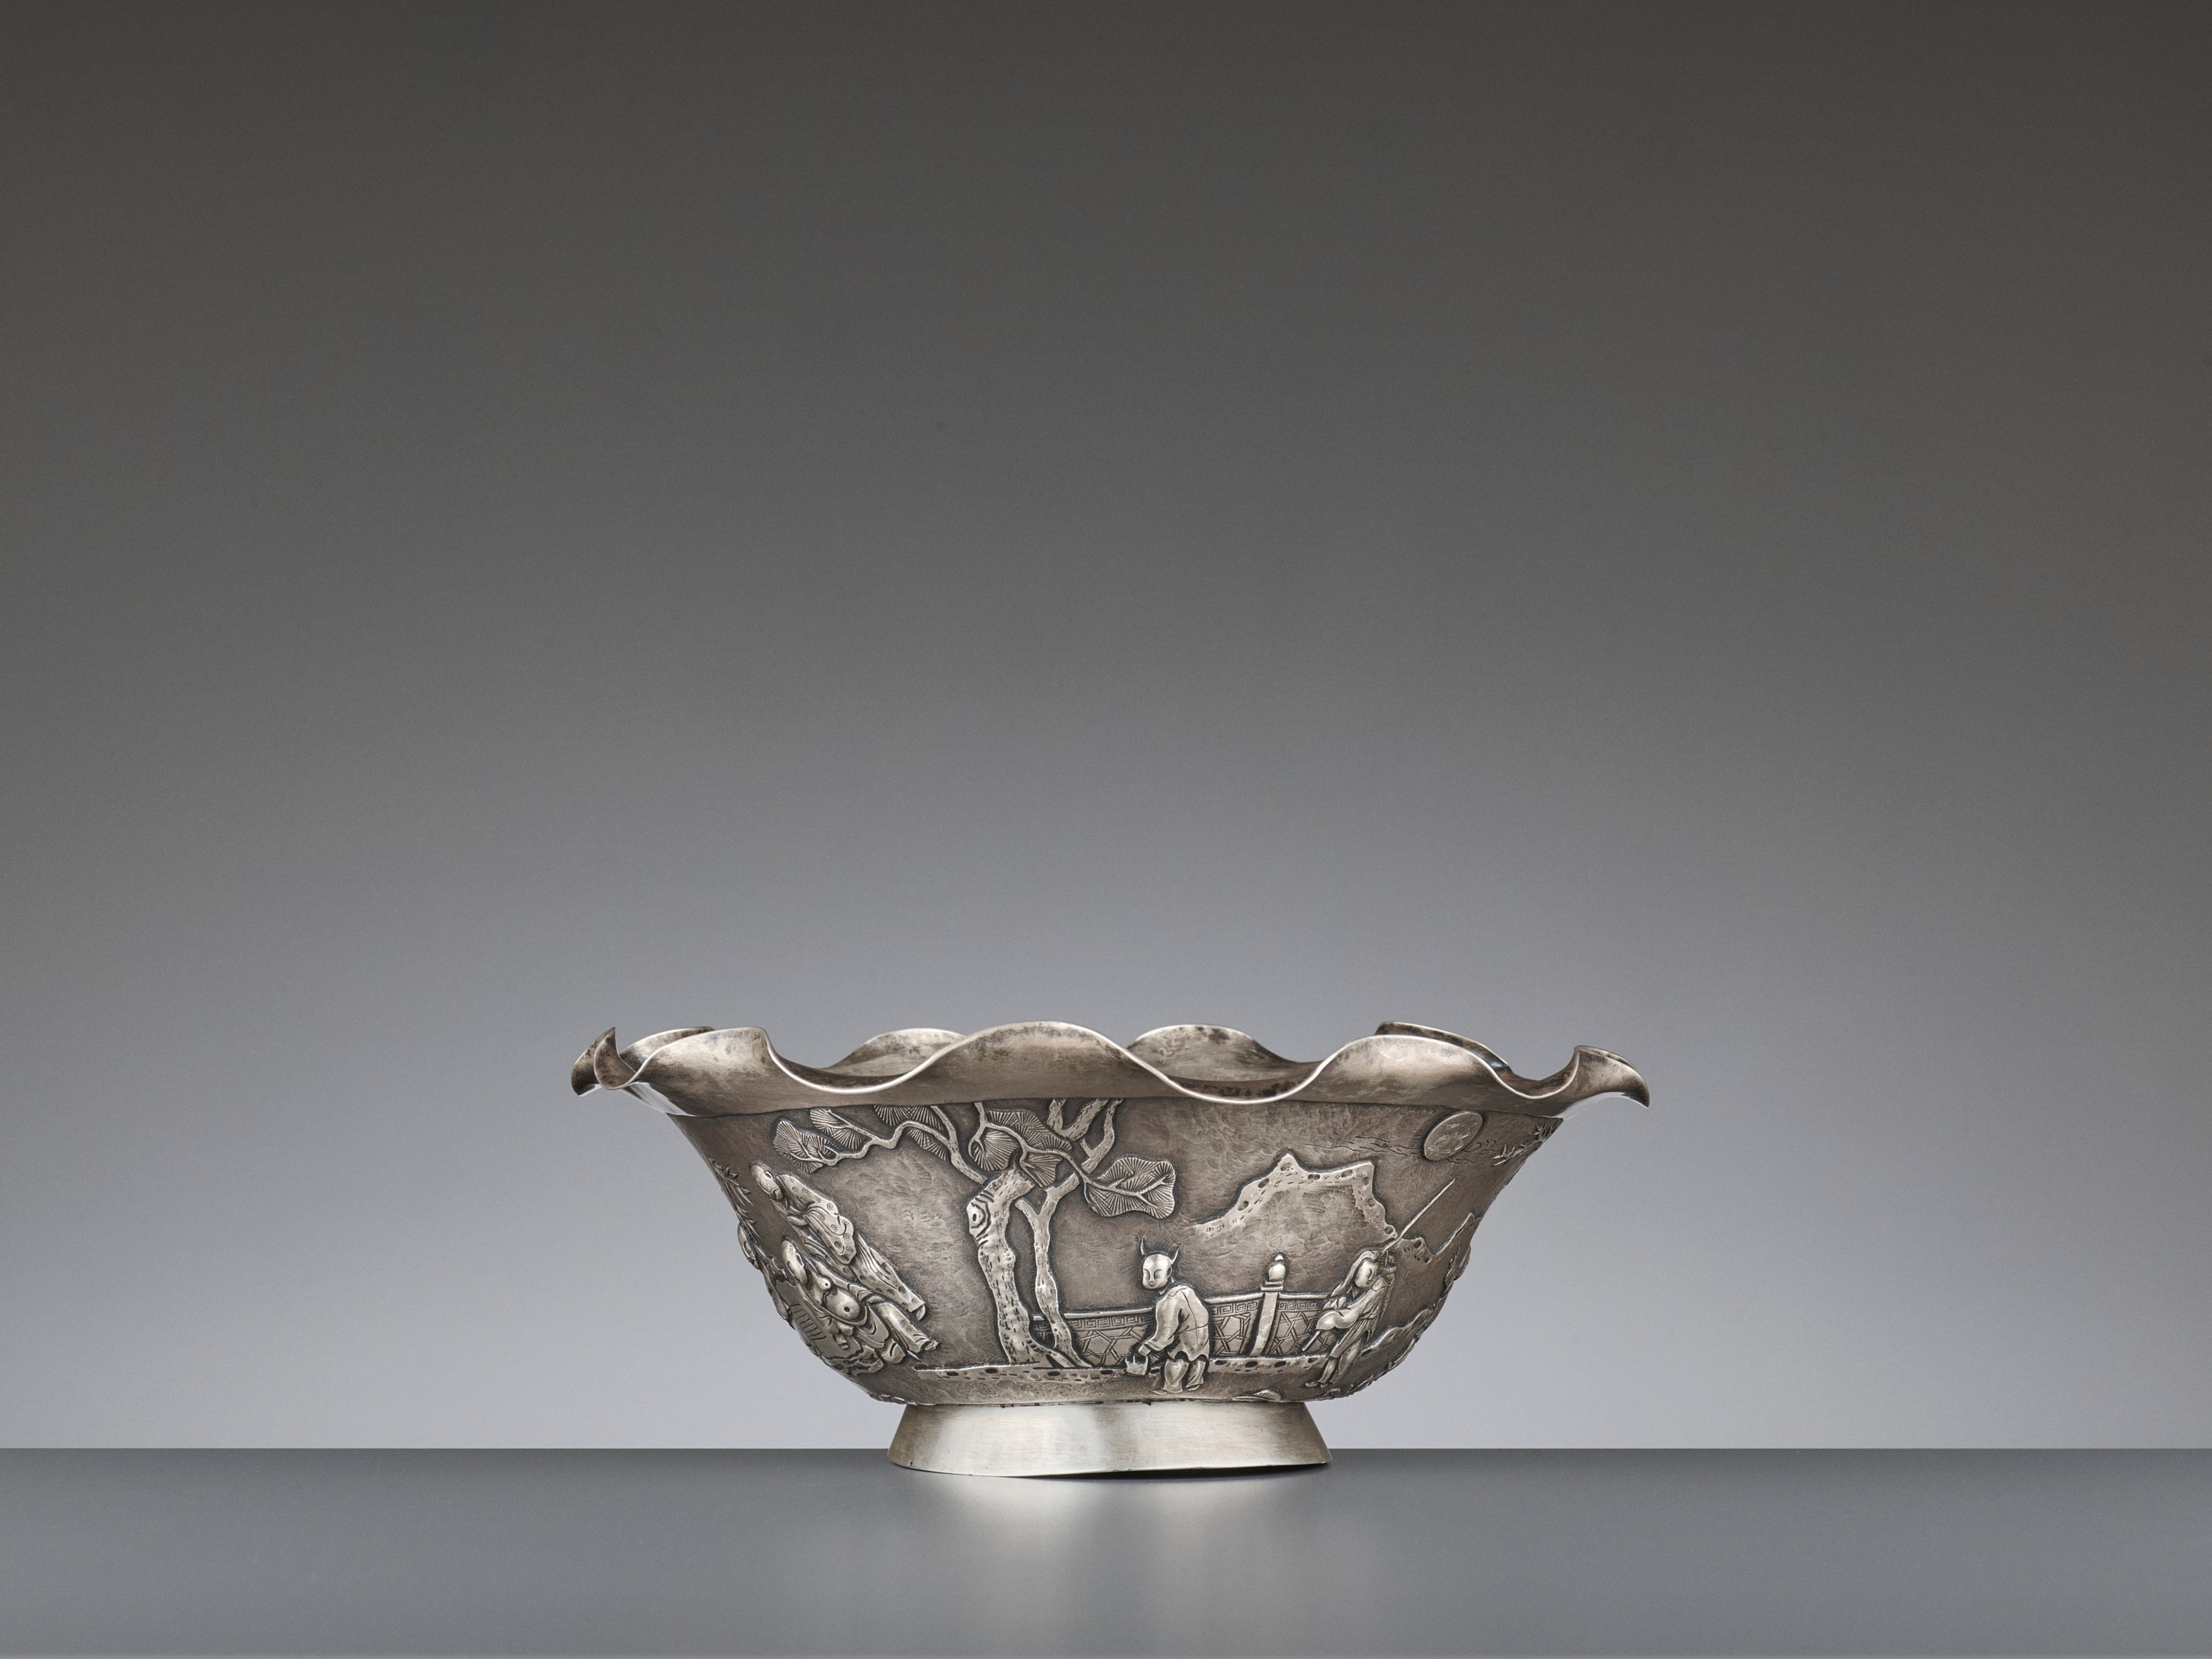 A SILVER REPOUSSE 'WEIQI PLAYERS' BOWL BY KWONG MAN SHING - Image 2 of 9